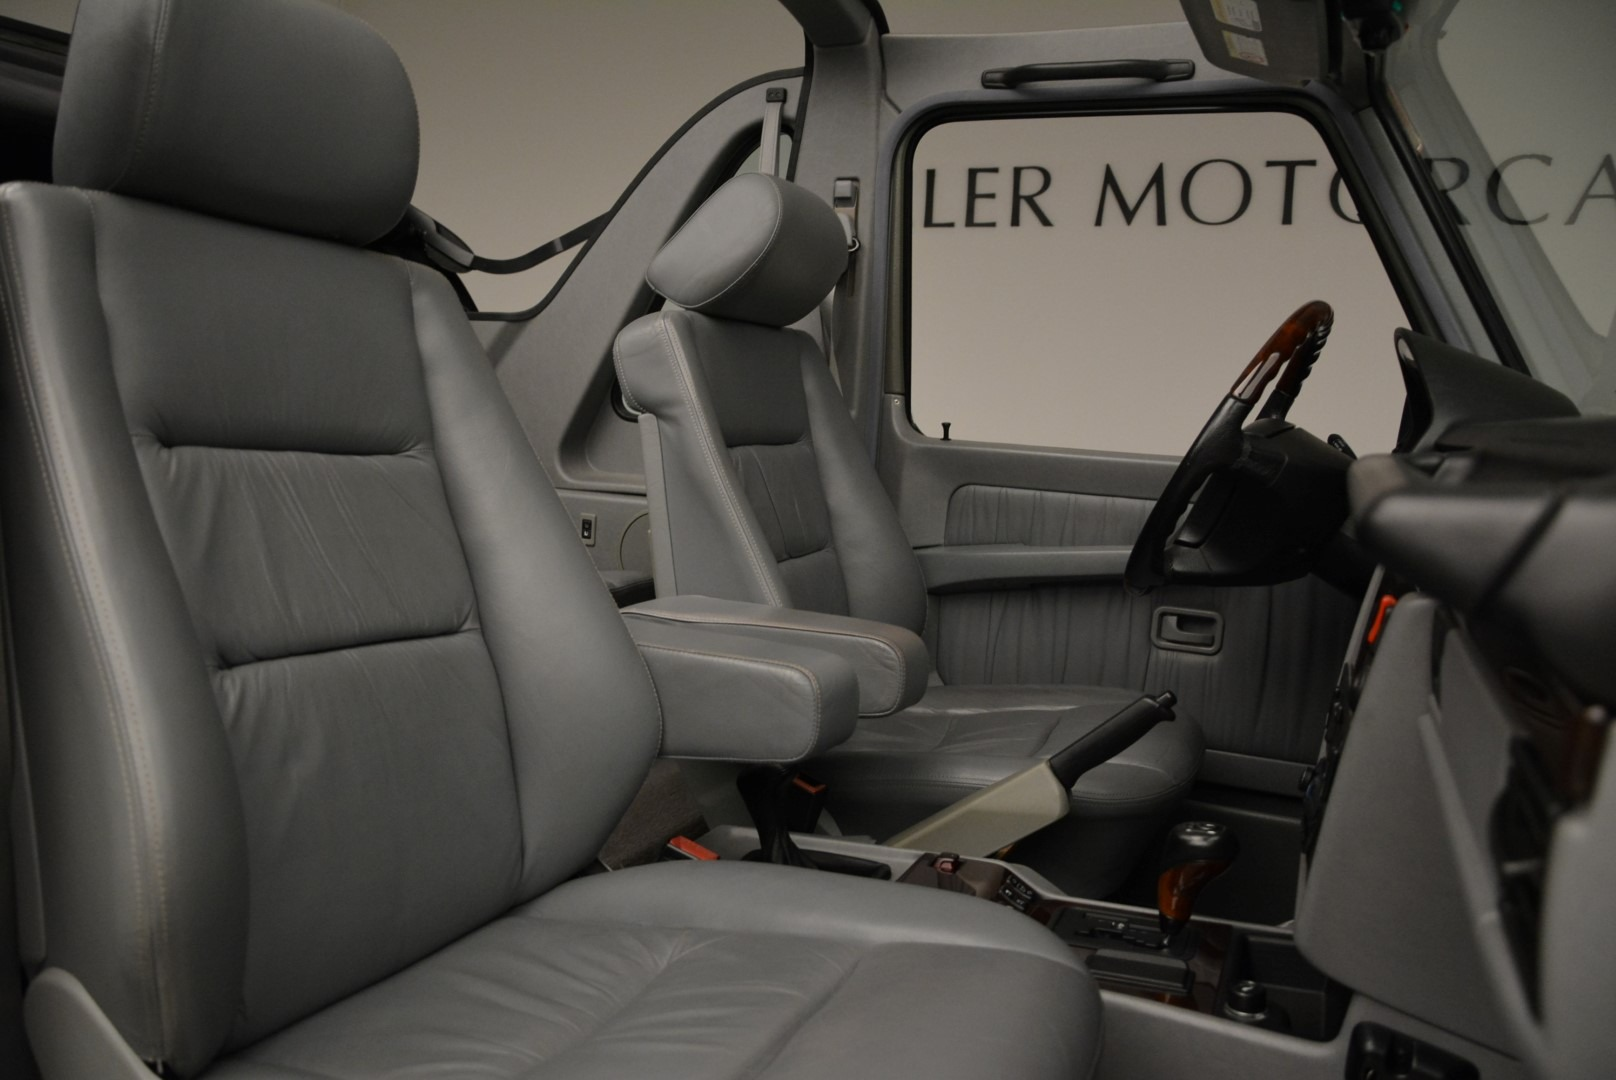 Used 1999 Mercedes Benz G500 Cabriolet For Sale In Greenwich, CT 1961_p28